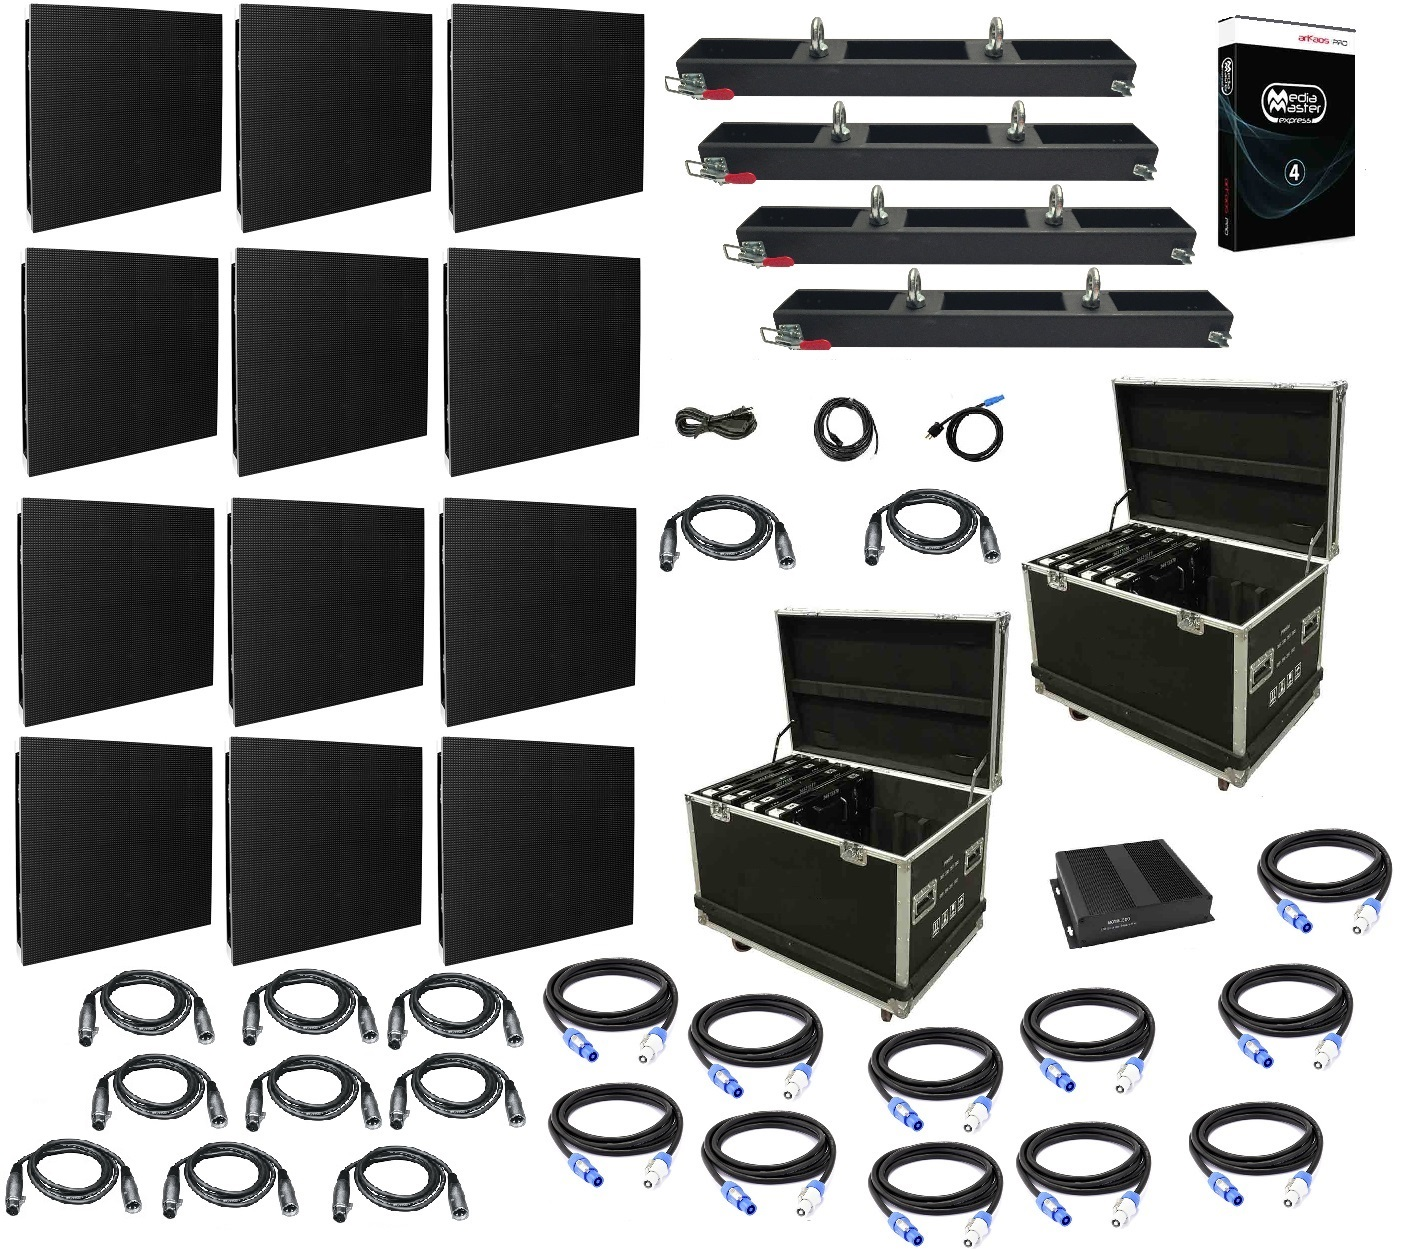 american-dj-av6-video-wall-4x3-complete-package.jpg